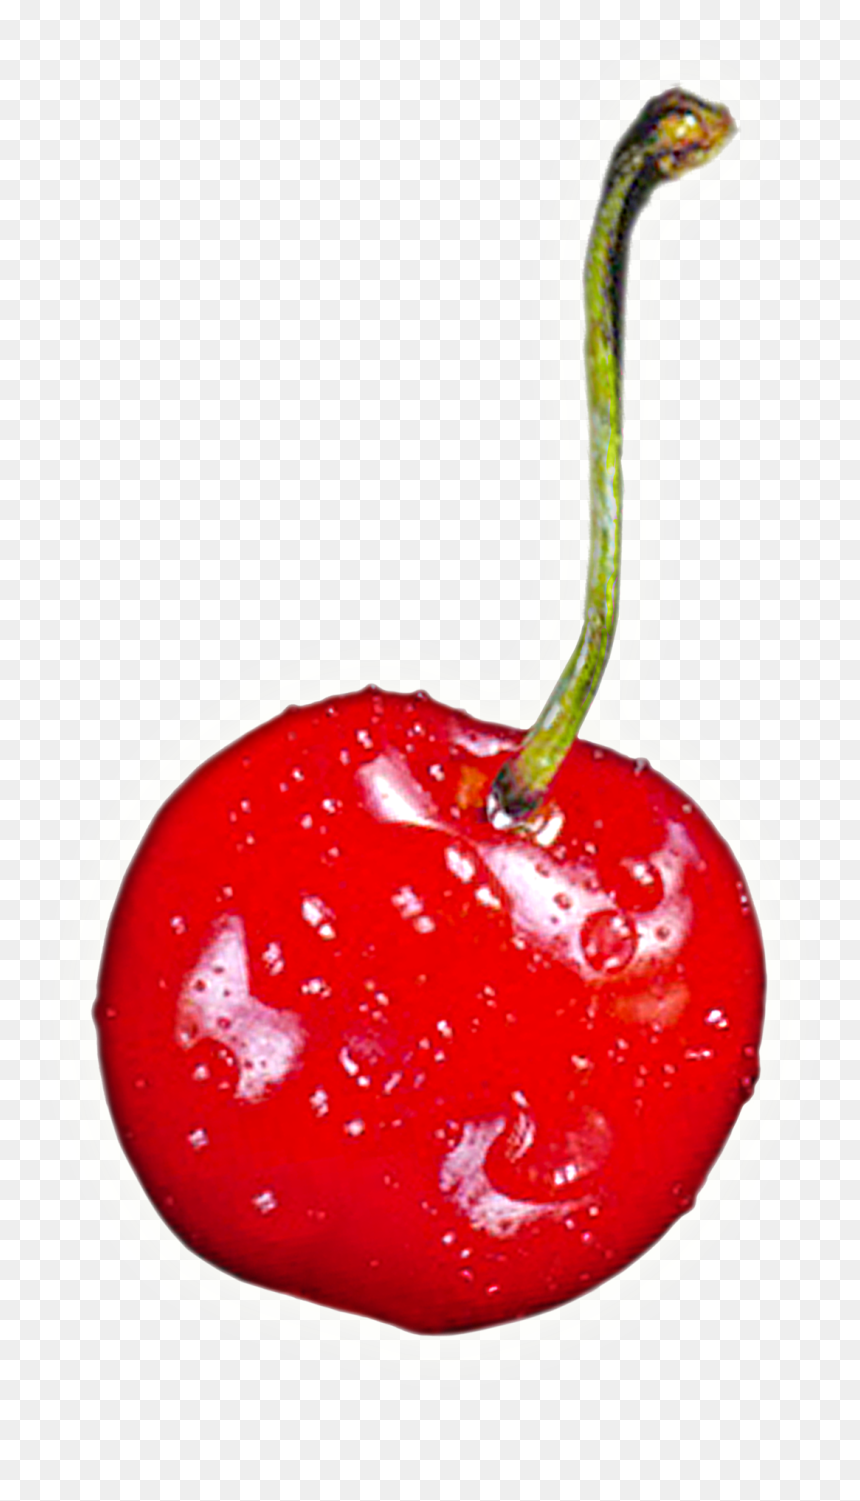 Cherry Free Download Png - Transparent Background Cherries Transparent, Png  Download - vhv